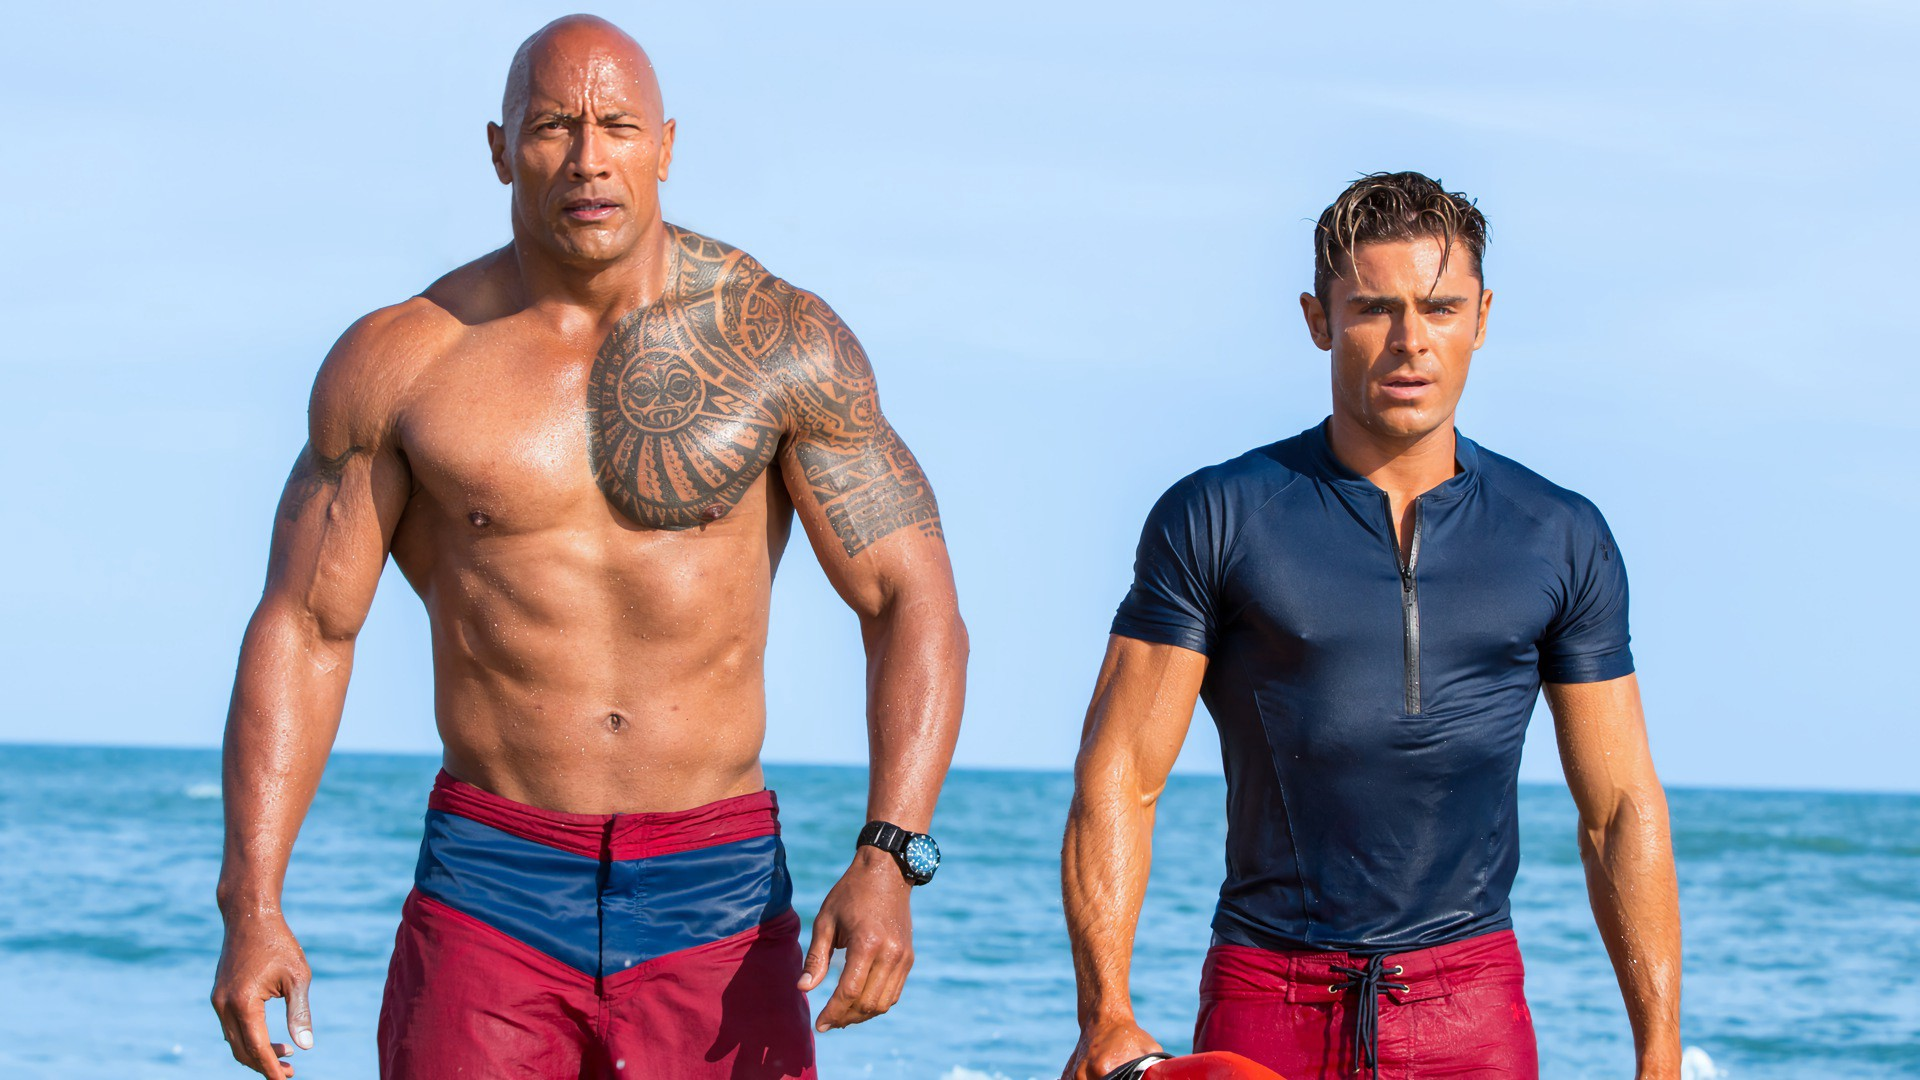 The Rock Vs Zac Efron We Asked 10 Women Which Baywatch Physique